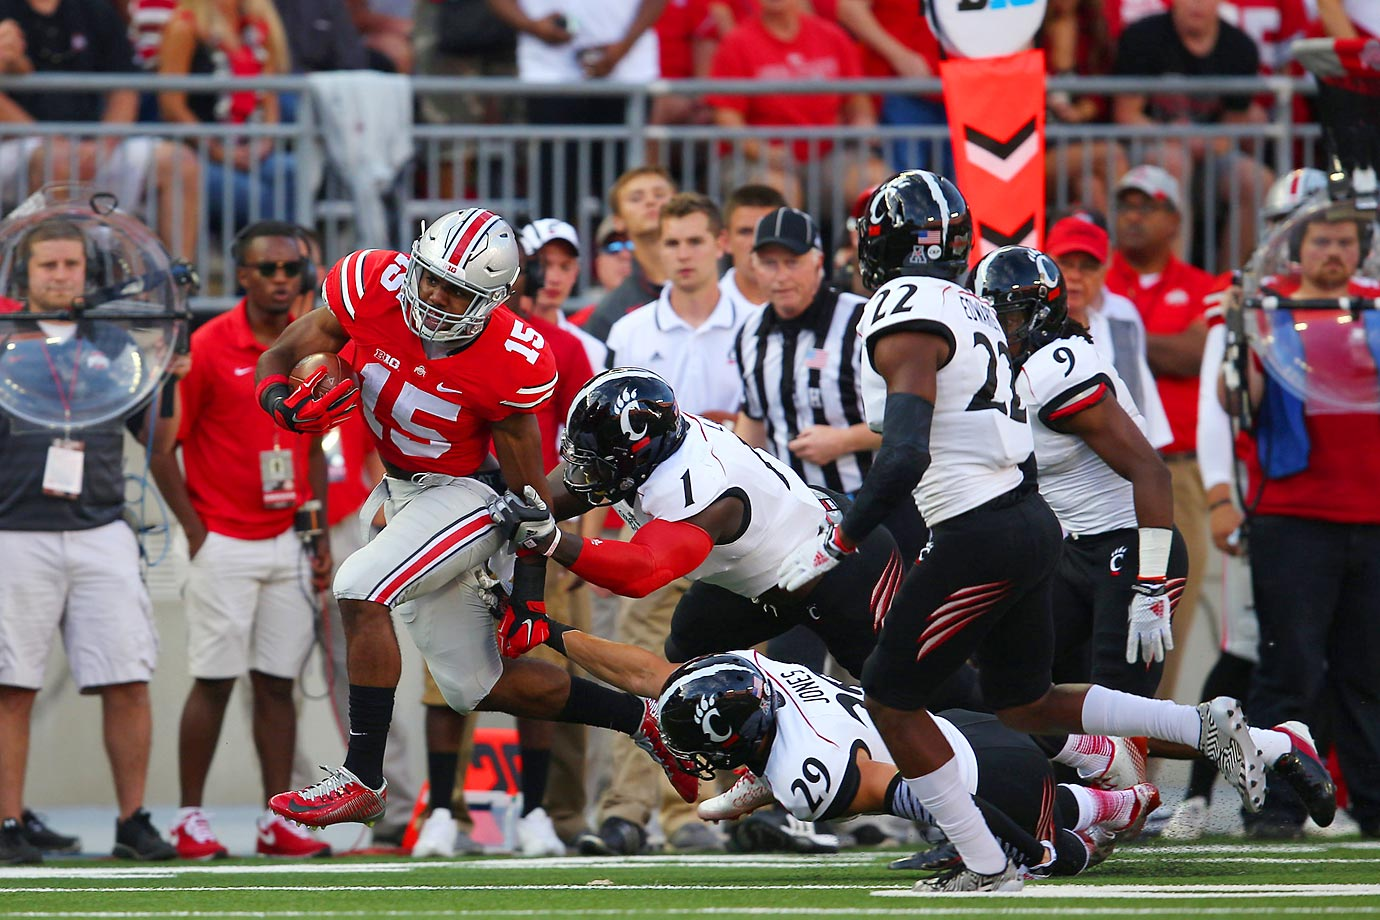 Cincinnati Bearcats defenders try to stop Ohio State running back Ezekiel Elliott.